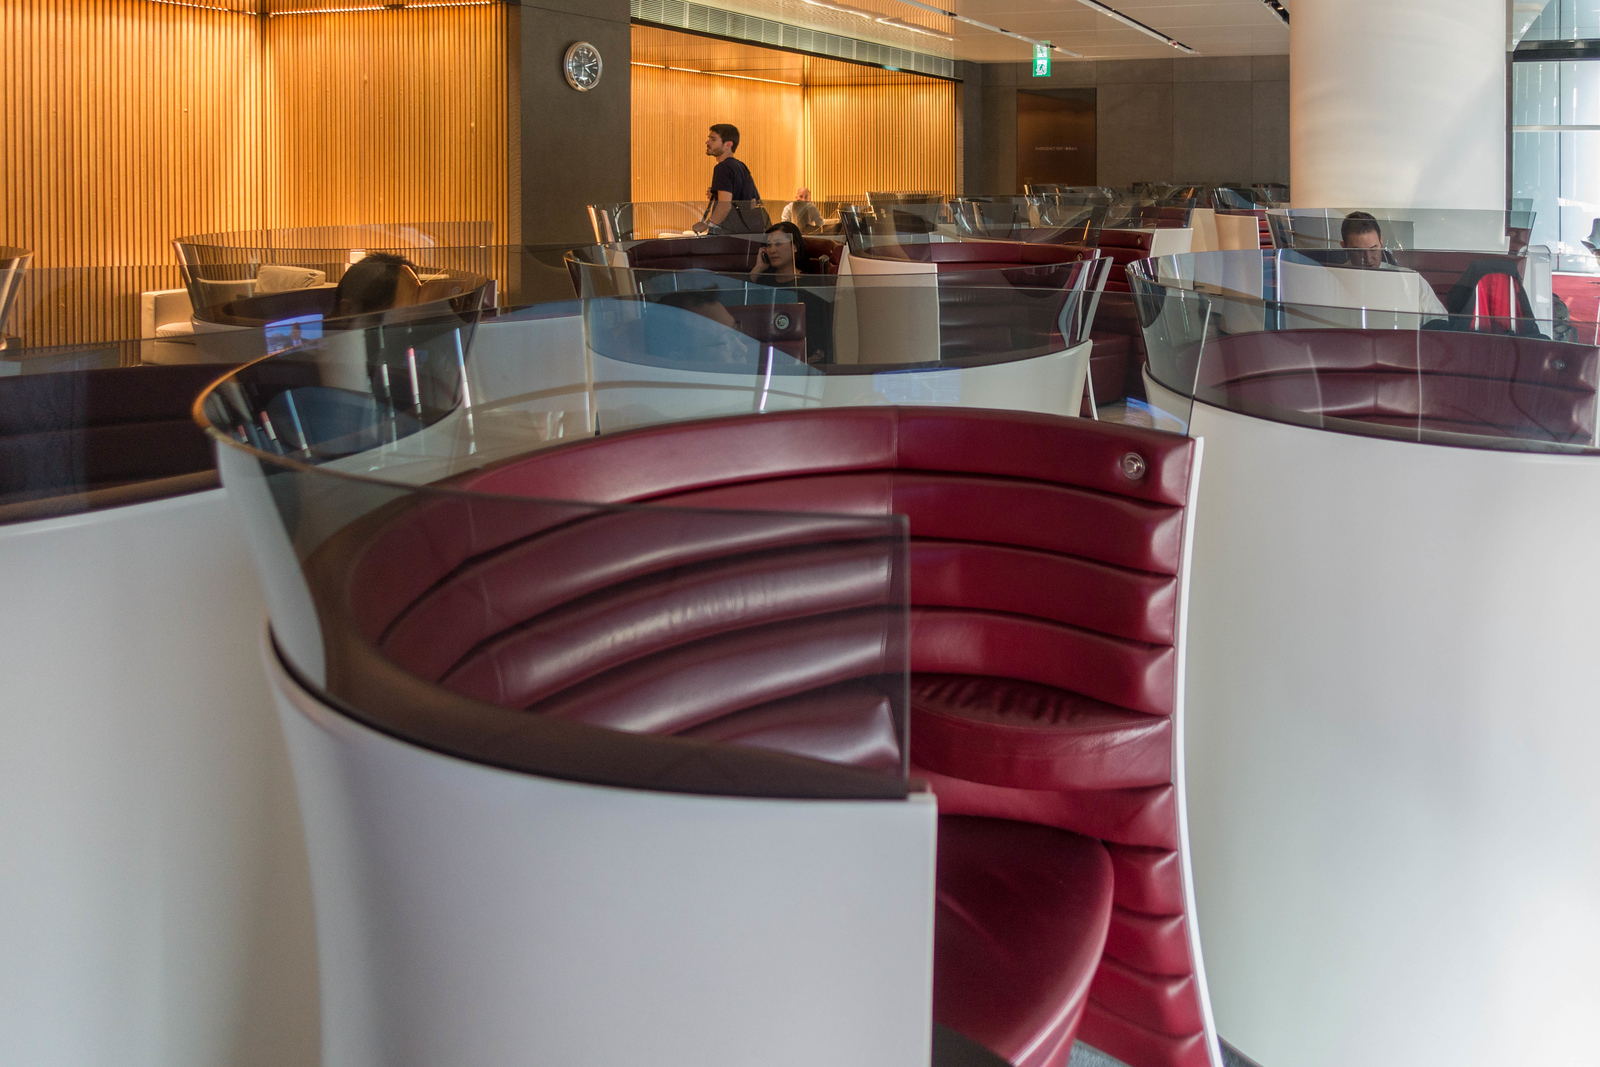 The Cathay Pacific lounge offers a little bit of sanctuary before your flight